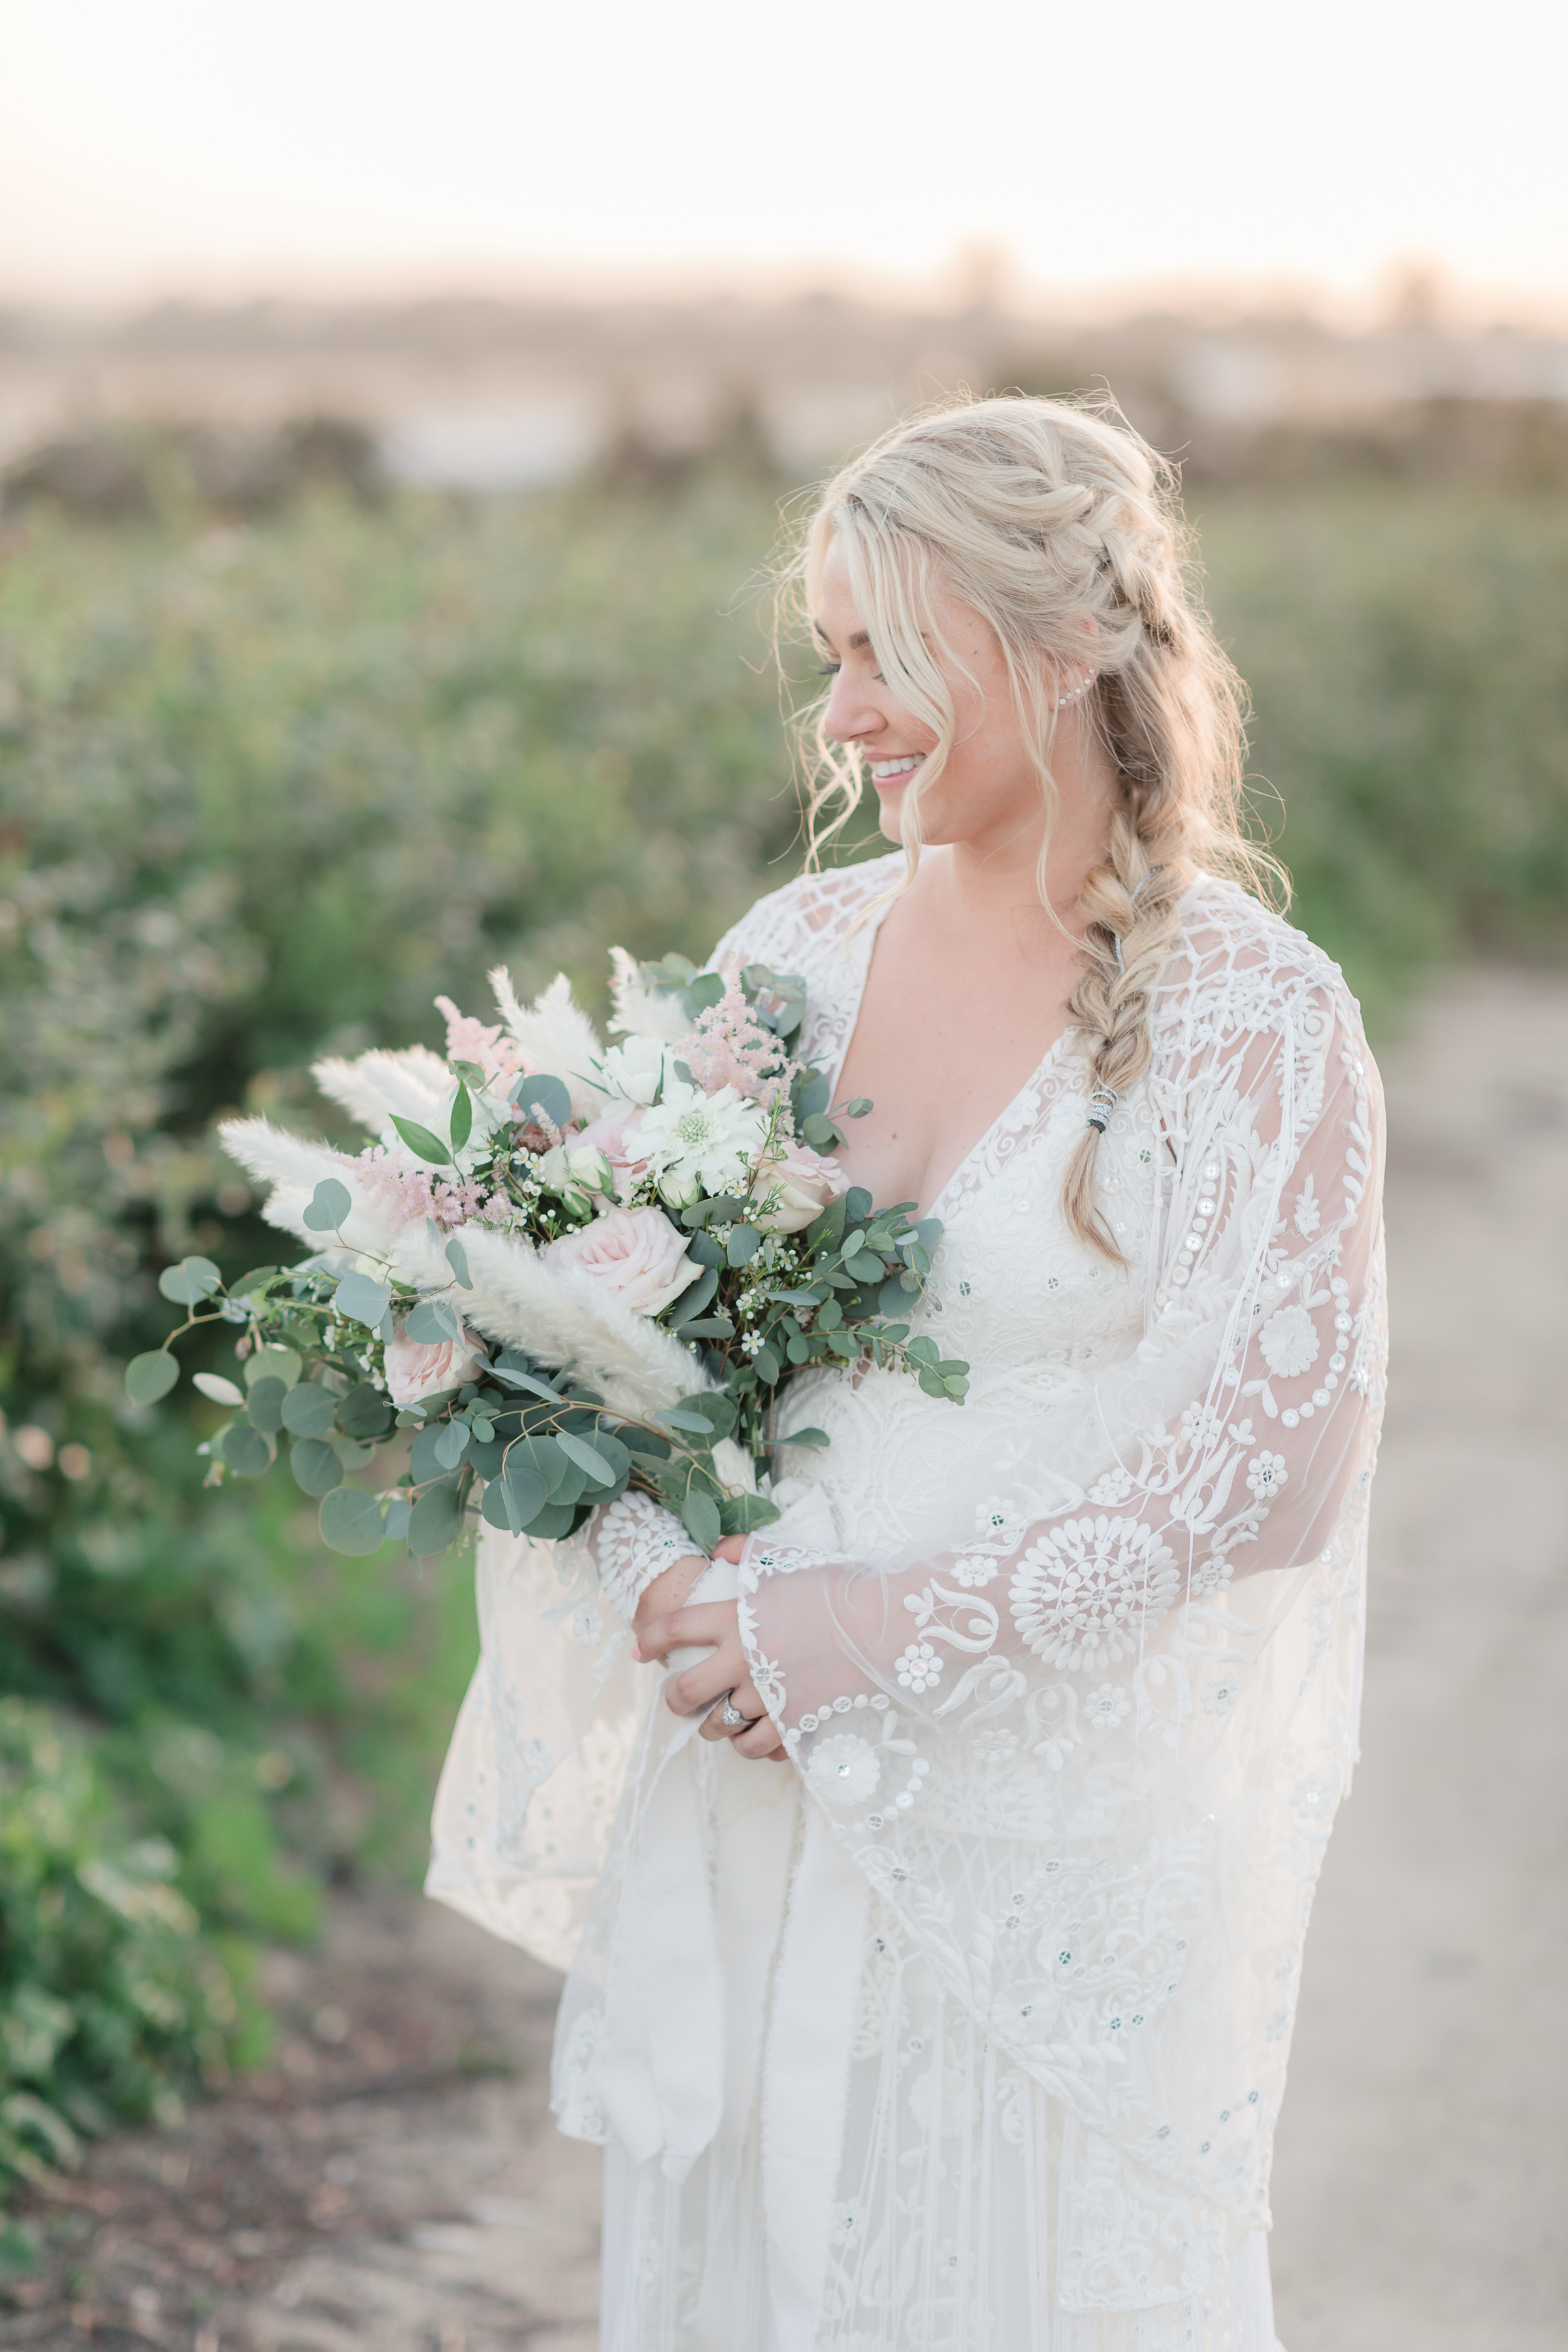 Bridal beauty in her lace, boho gown